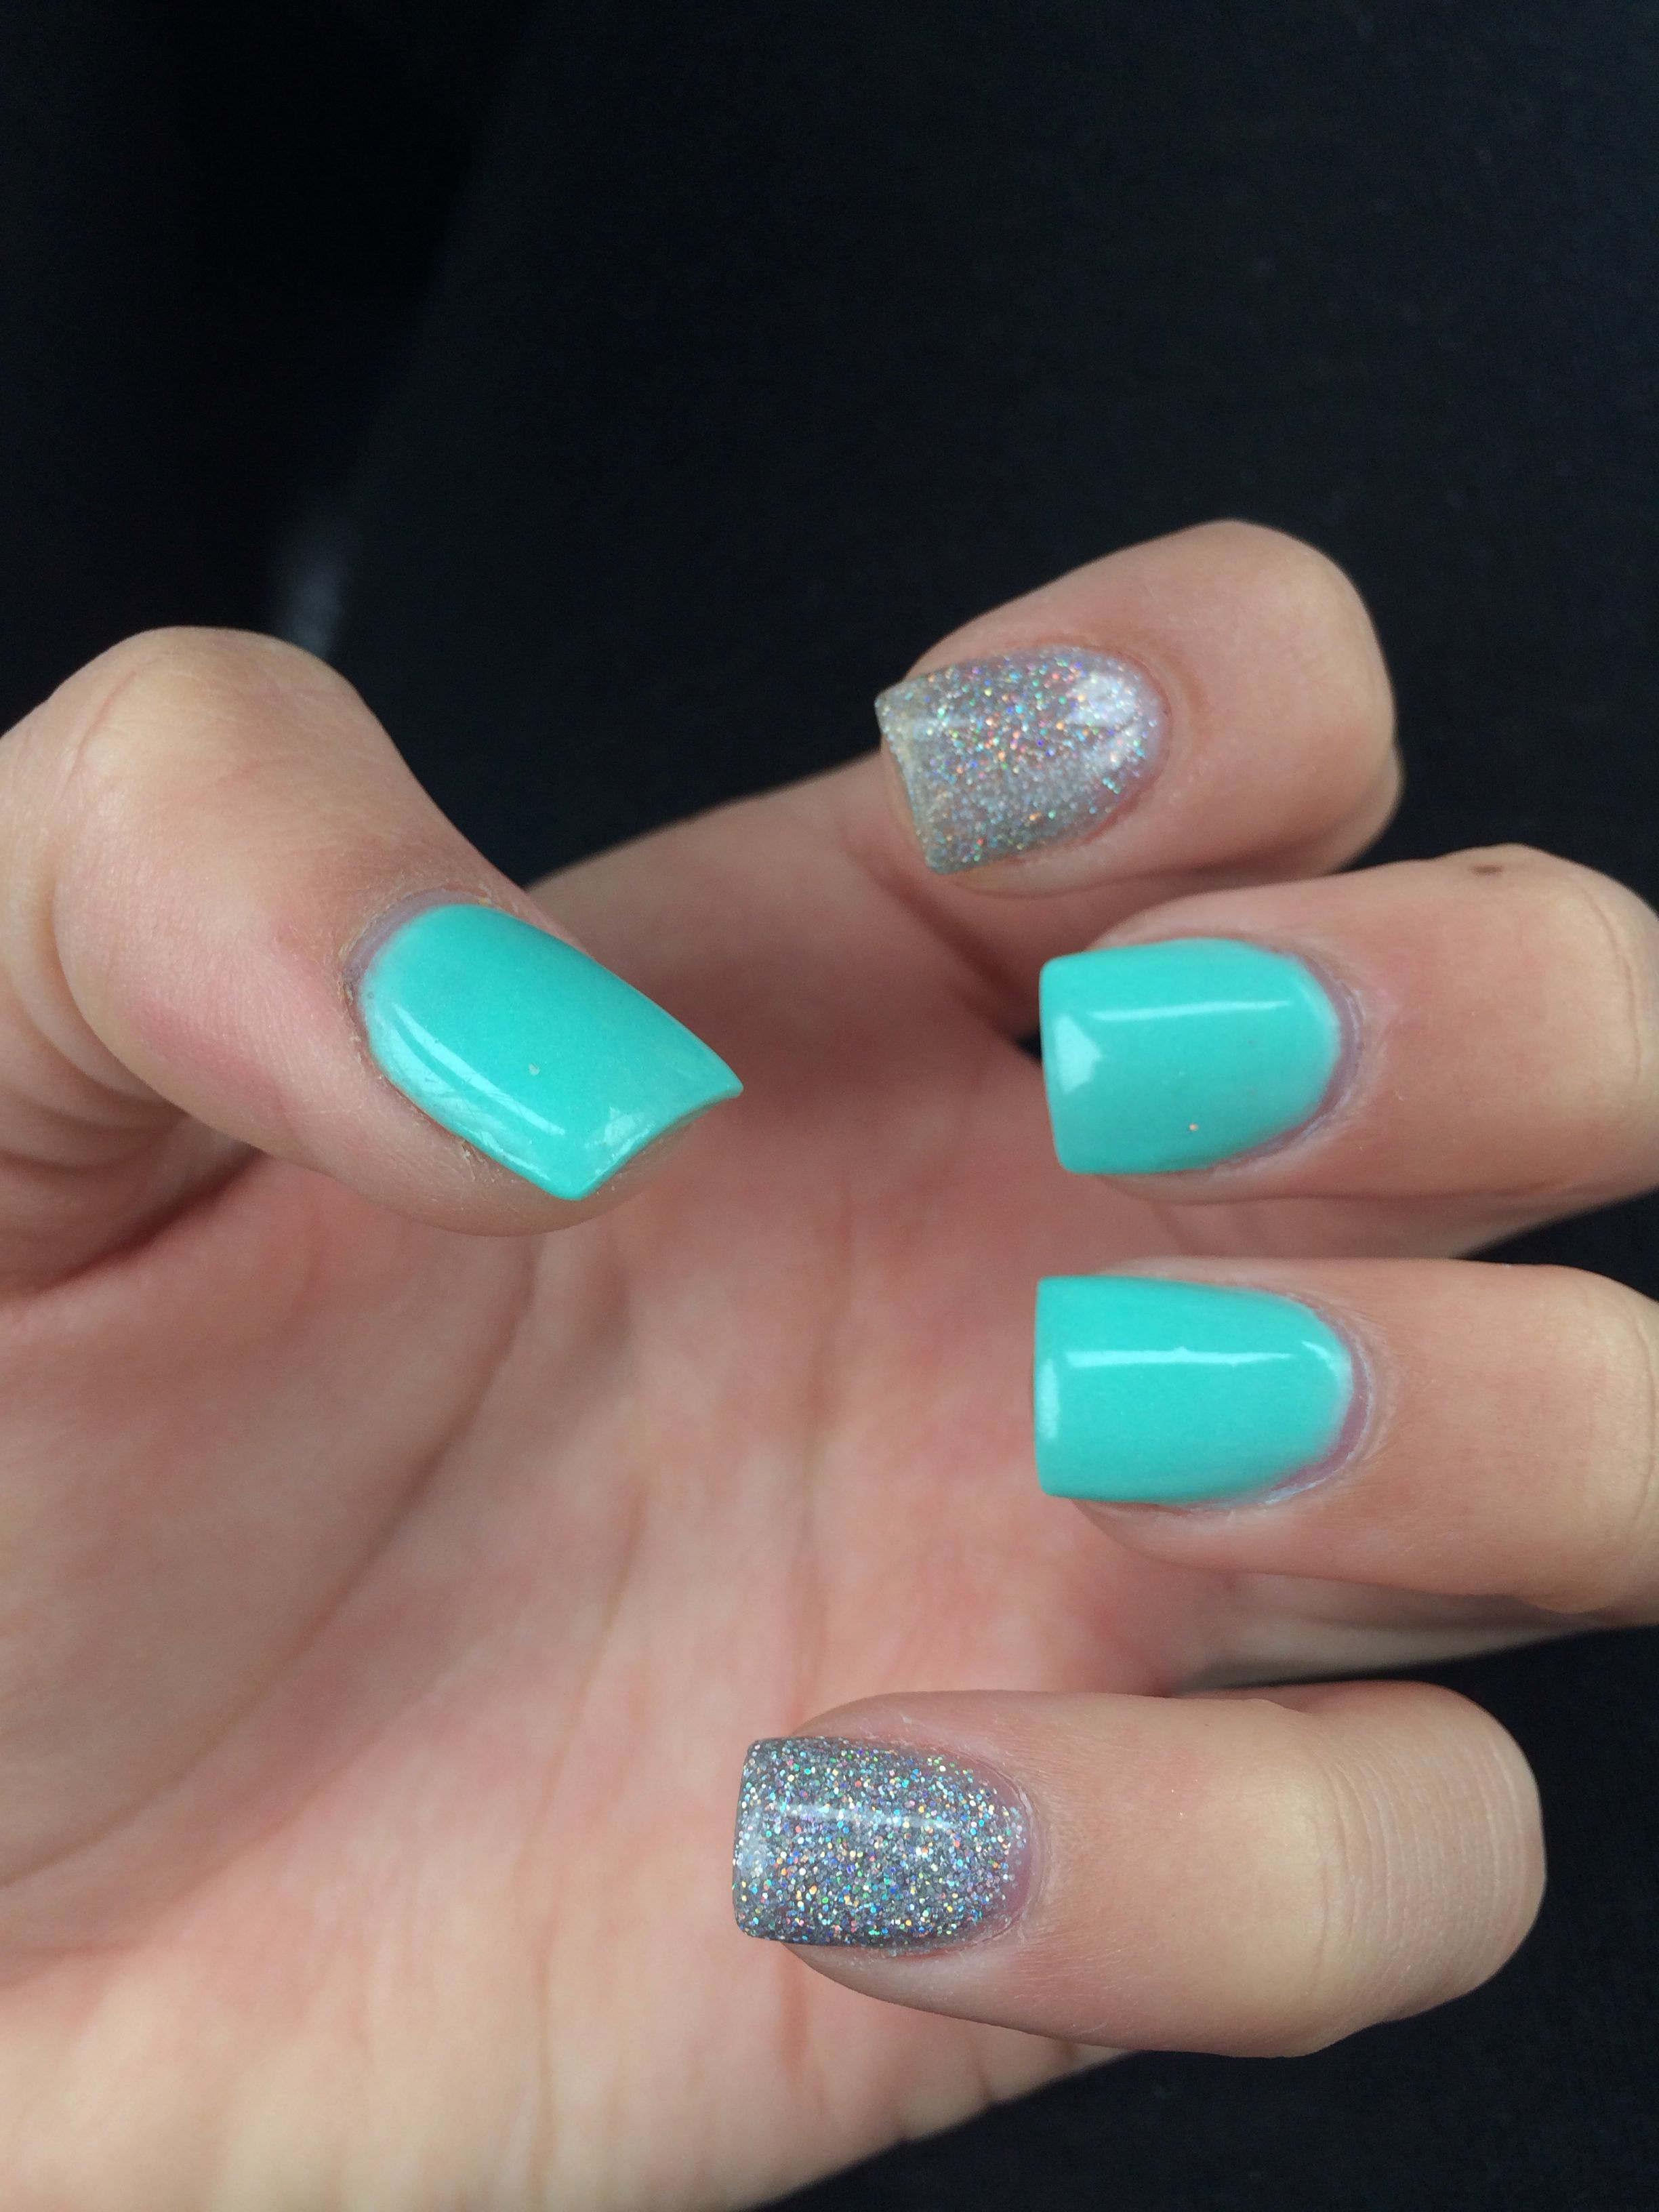 Teal acrylic nails | Acrylic nails | Pinterest | Teal acrylic nails ...